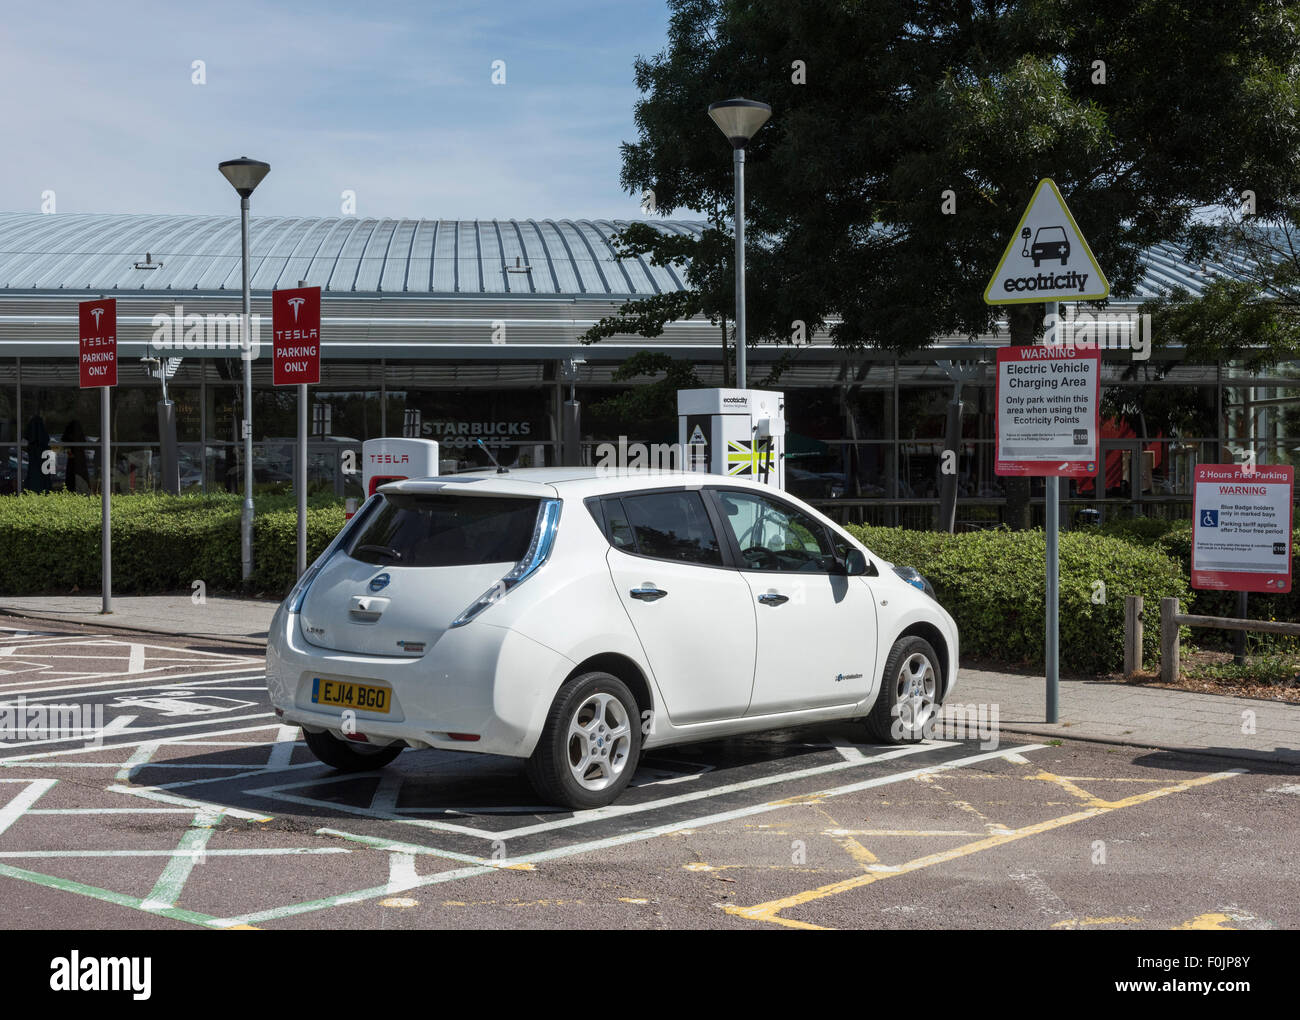 Nissan Leaf At Ecotricity Charging Point At Motorway Services UK   Stock  Image